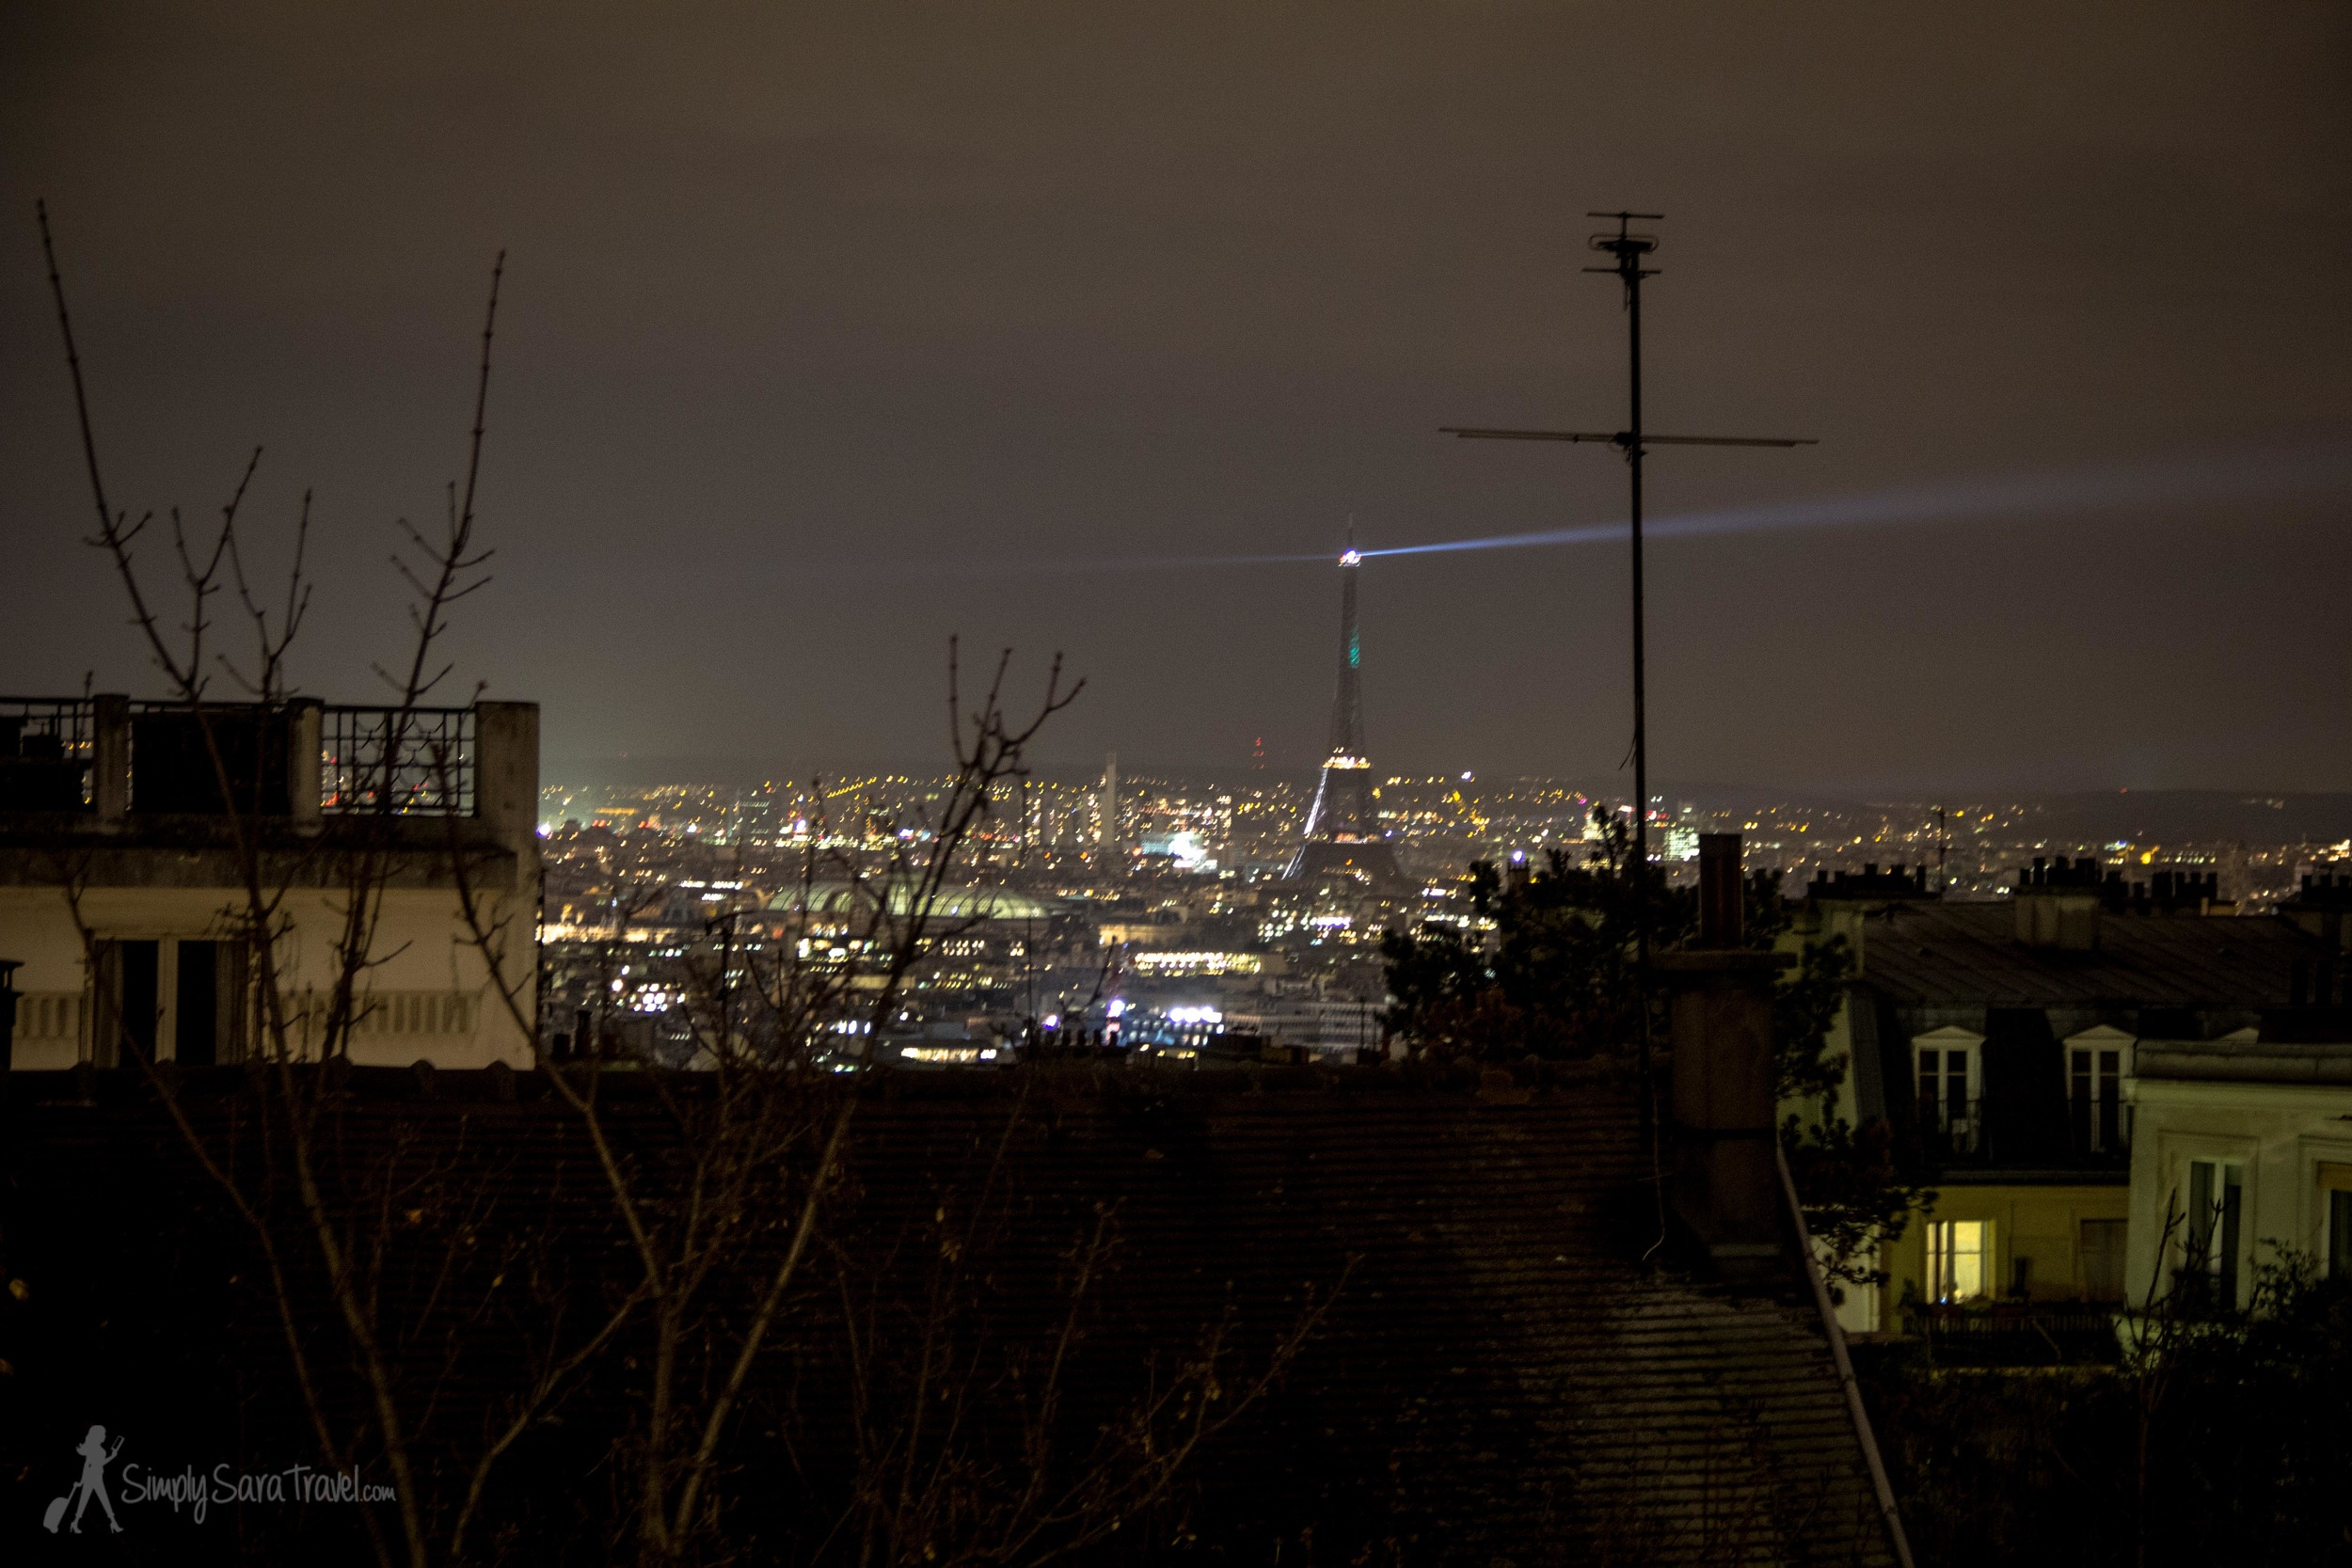 Catching a glimpse of the Iron Lady from Montmartre